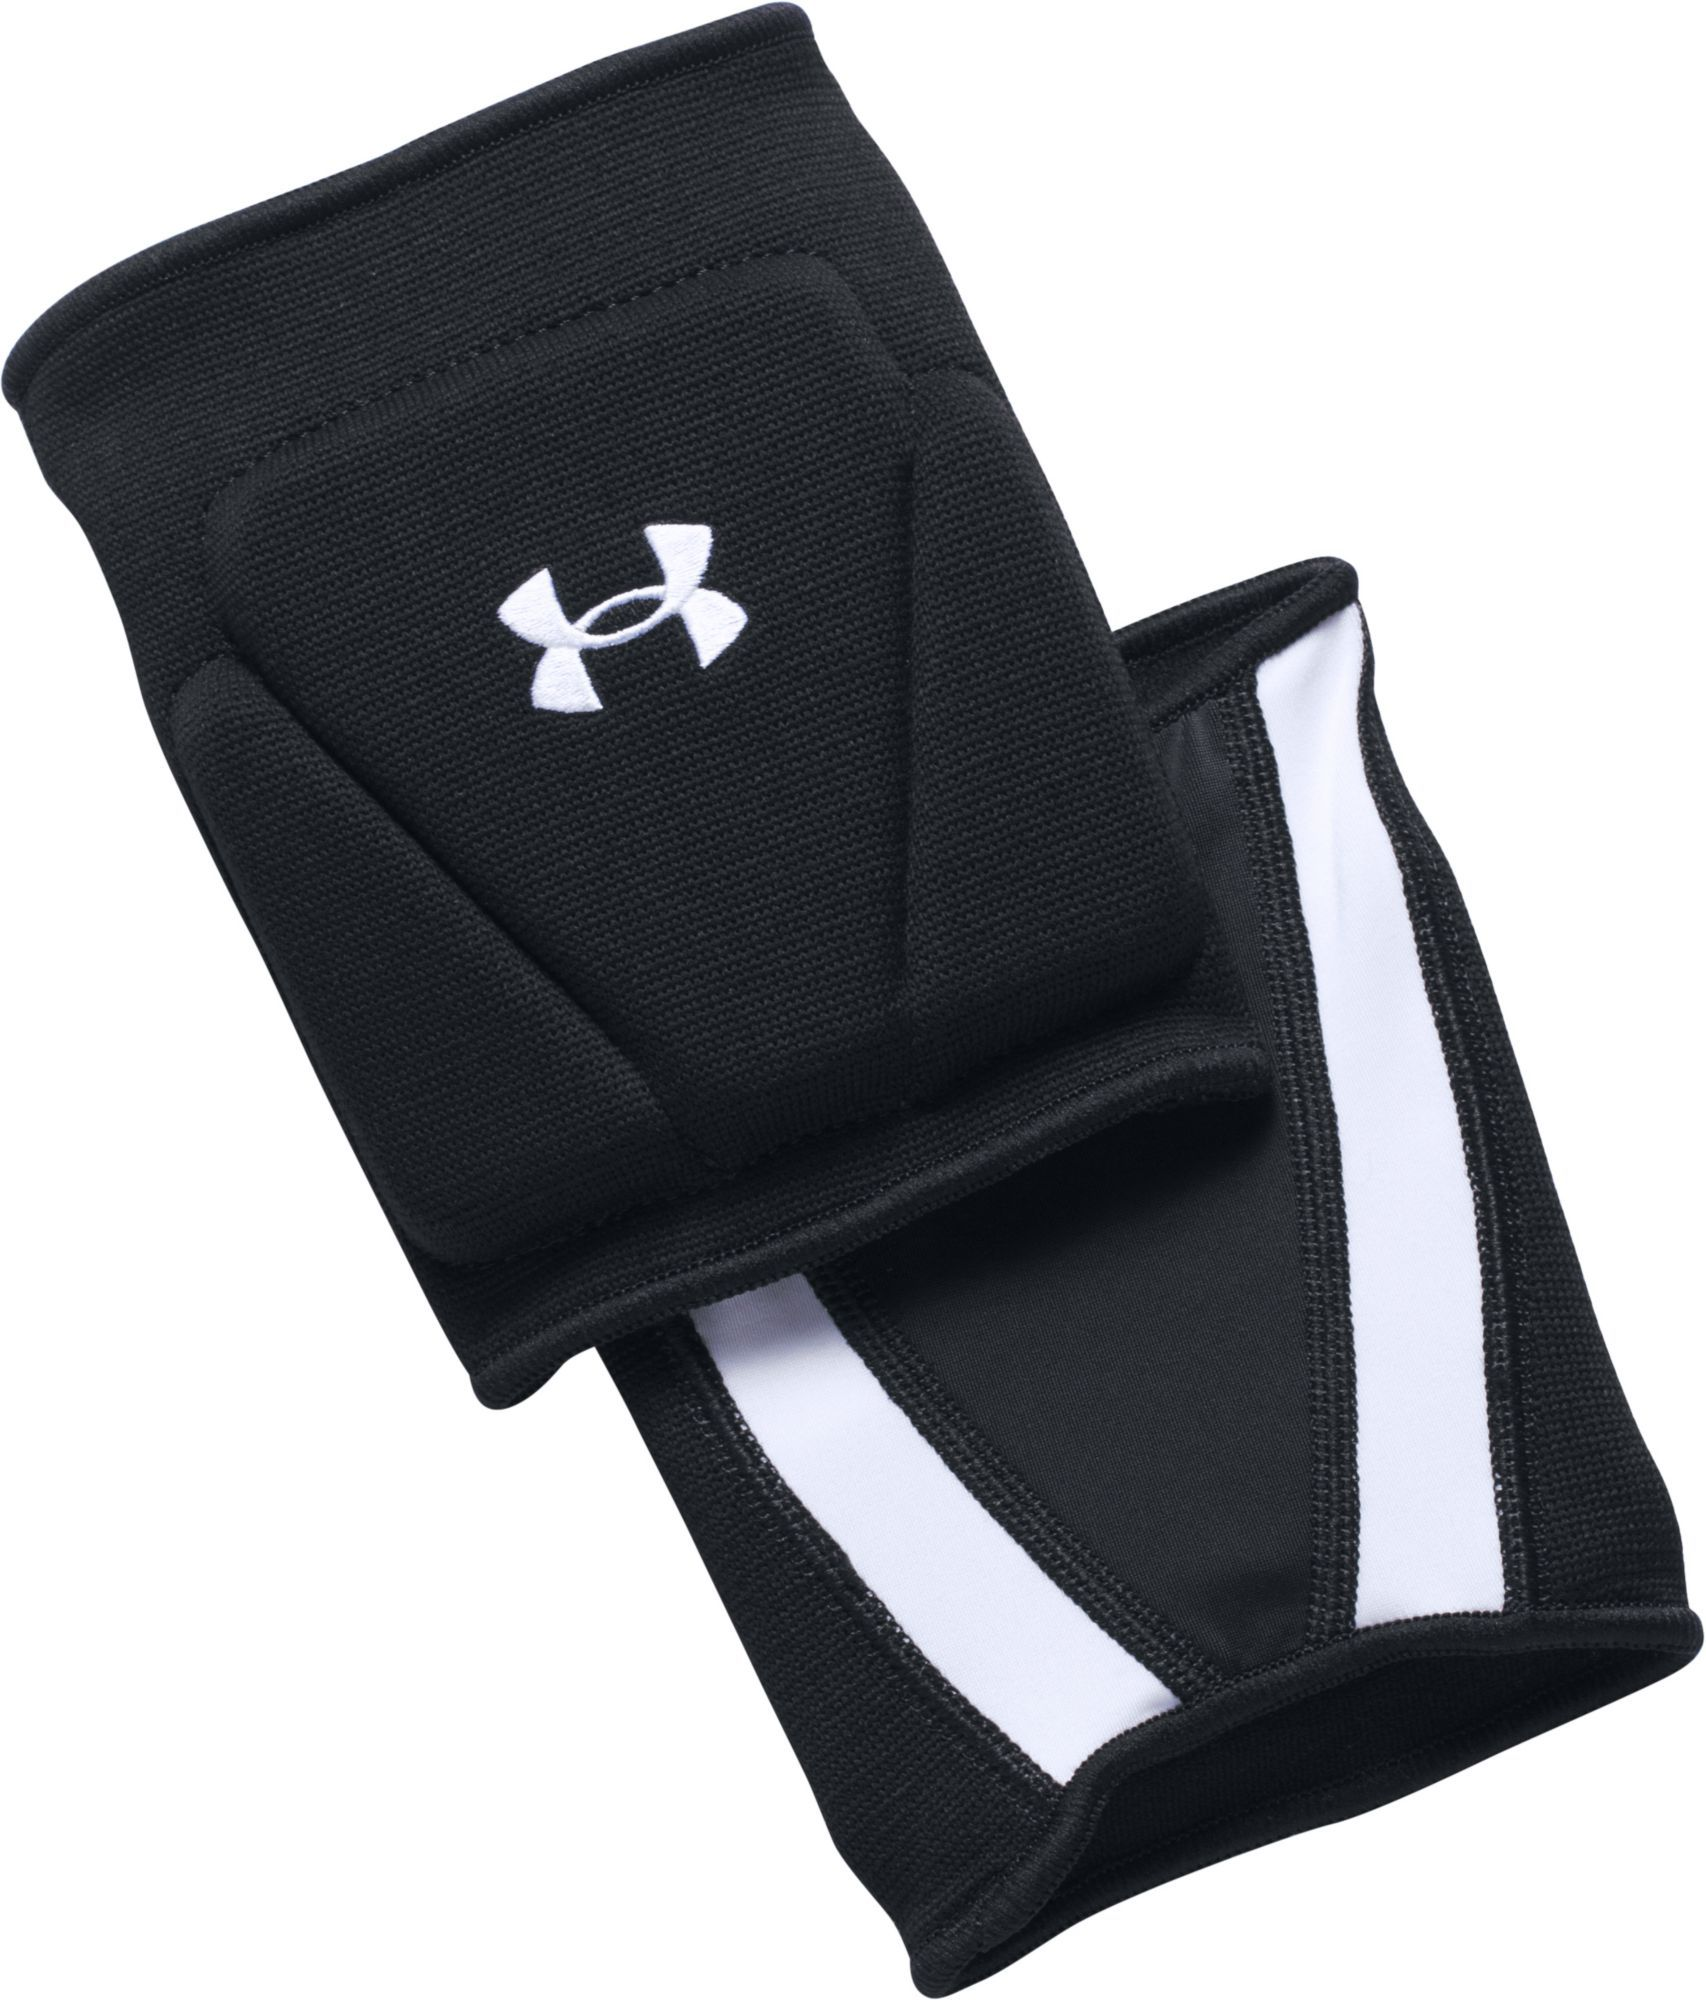 1329af6d99dd Under Armour Adult Strive 2.0 Volleyball Knee Pads in 2019 ...